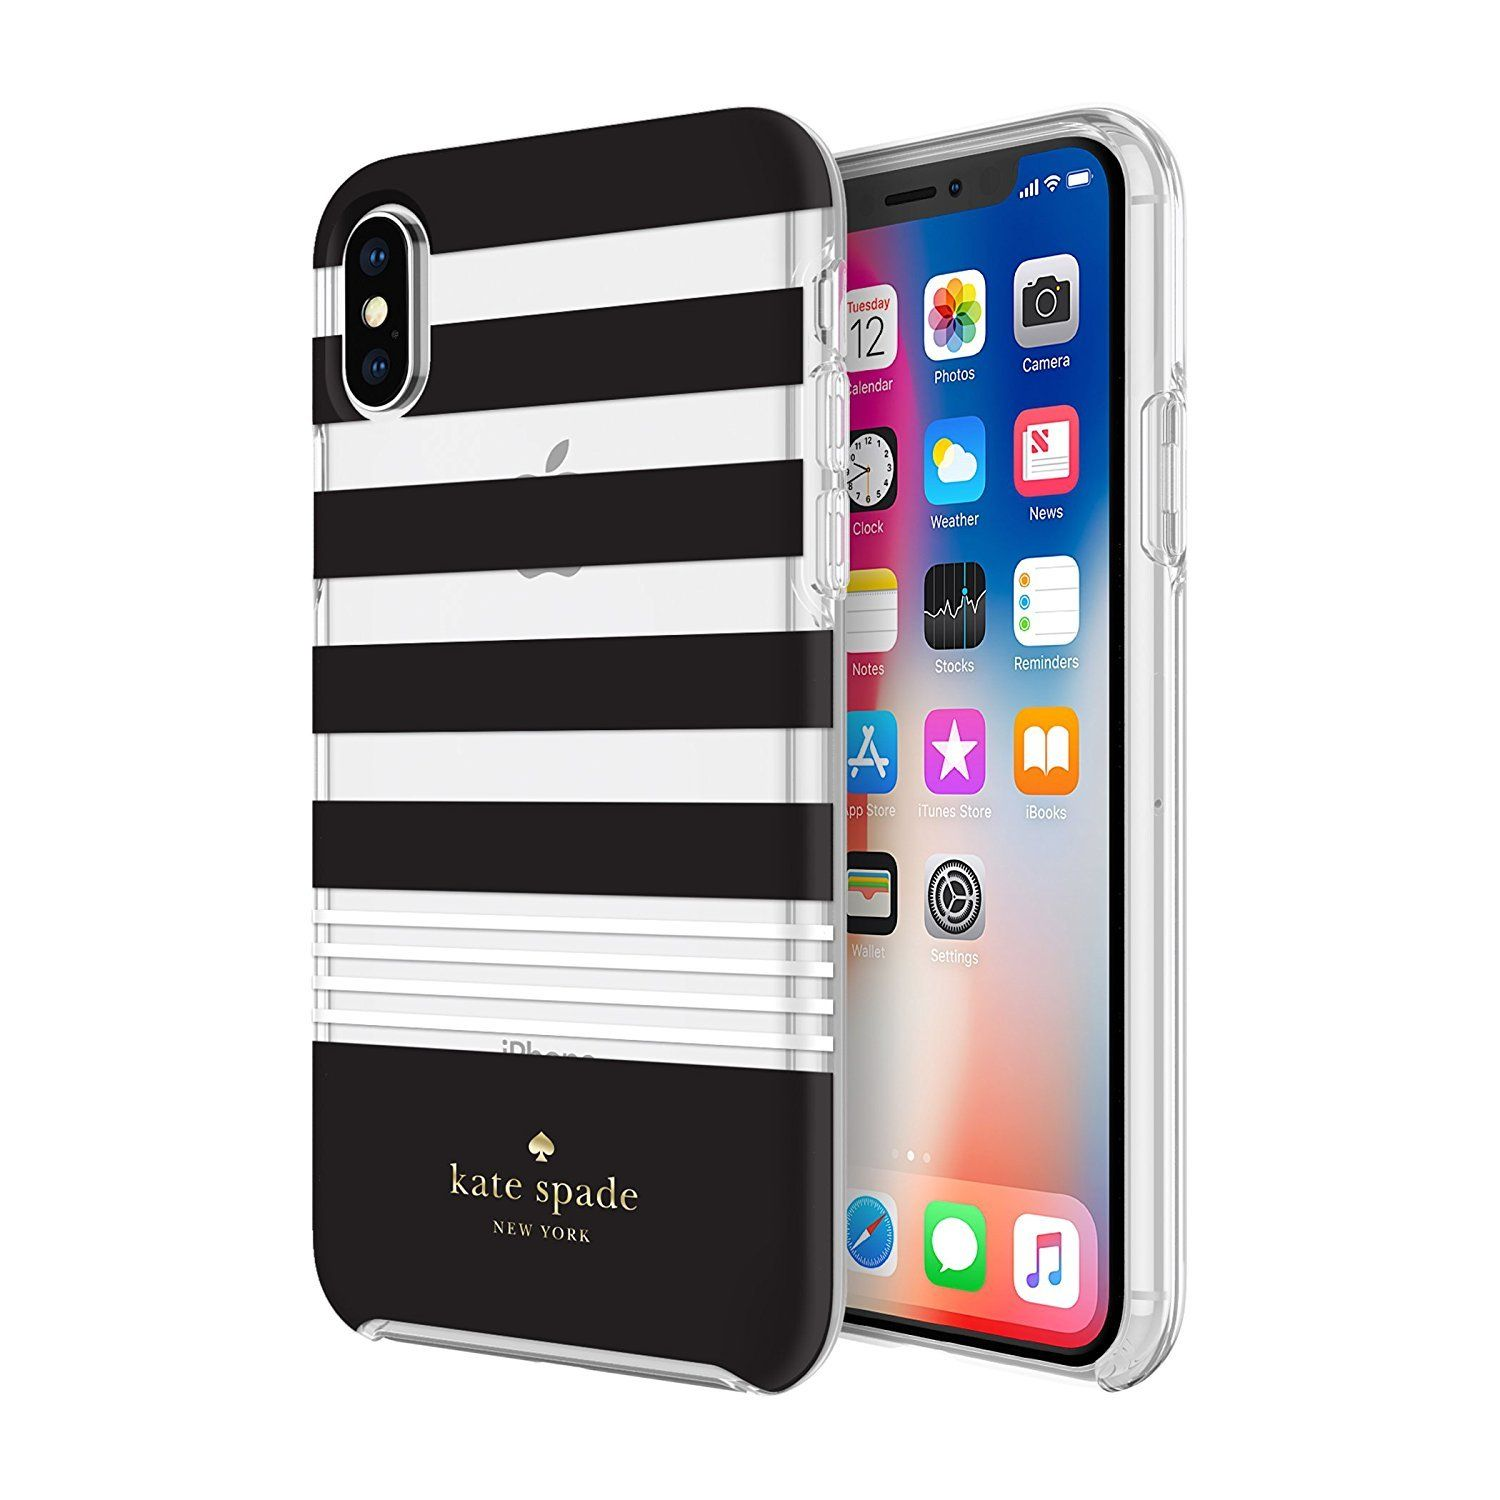 Kate spade new york iphone x case clear black and white